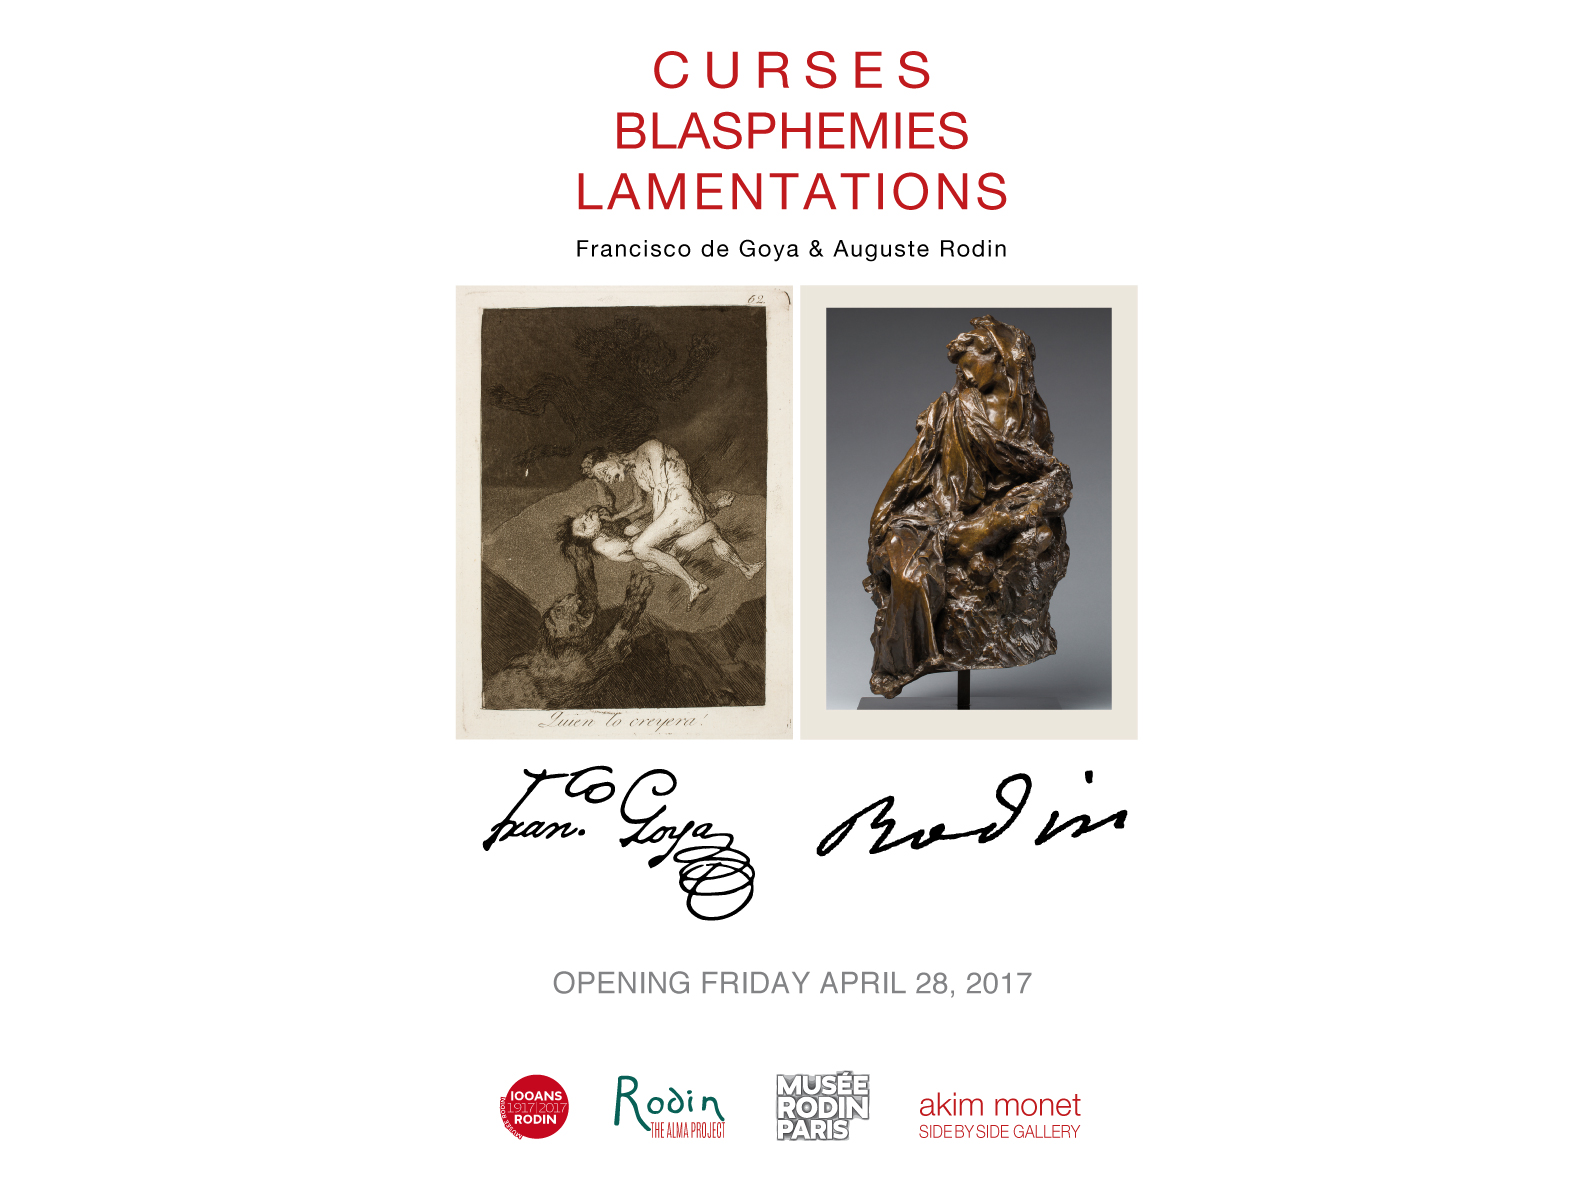 OPENING DURING BERLIN GALLERY WEEK-ENDCURSES, BLASPHEMIES, LAMENTATIONS: Francisco de Goya & Auguste Rodin will be inaugurated on Friday April 28, 2017 6 - 9 pm during GALLERY WEEK-END BERLIN 2017.Meanwhile, please click here view our 2017 ANNIVERSARY eCATALOGUE presented in association with the Musée Rodin, Paris.